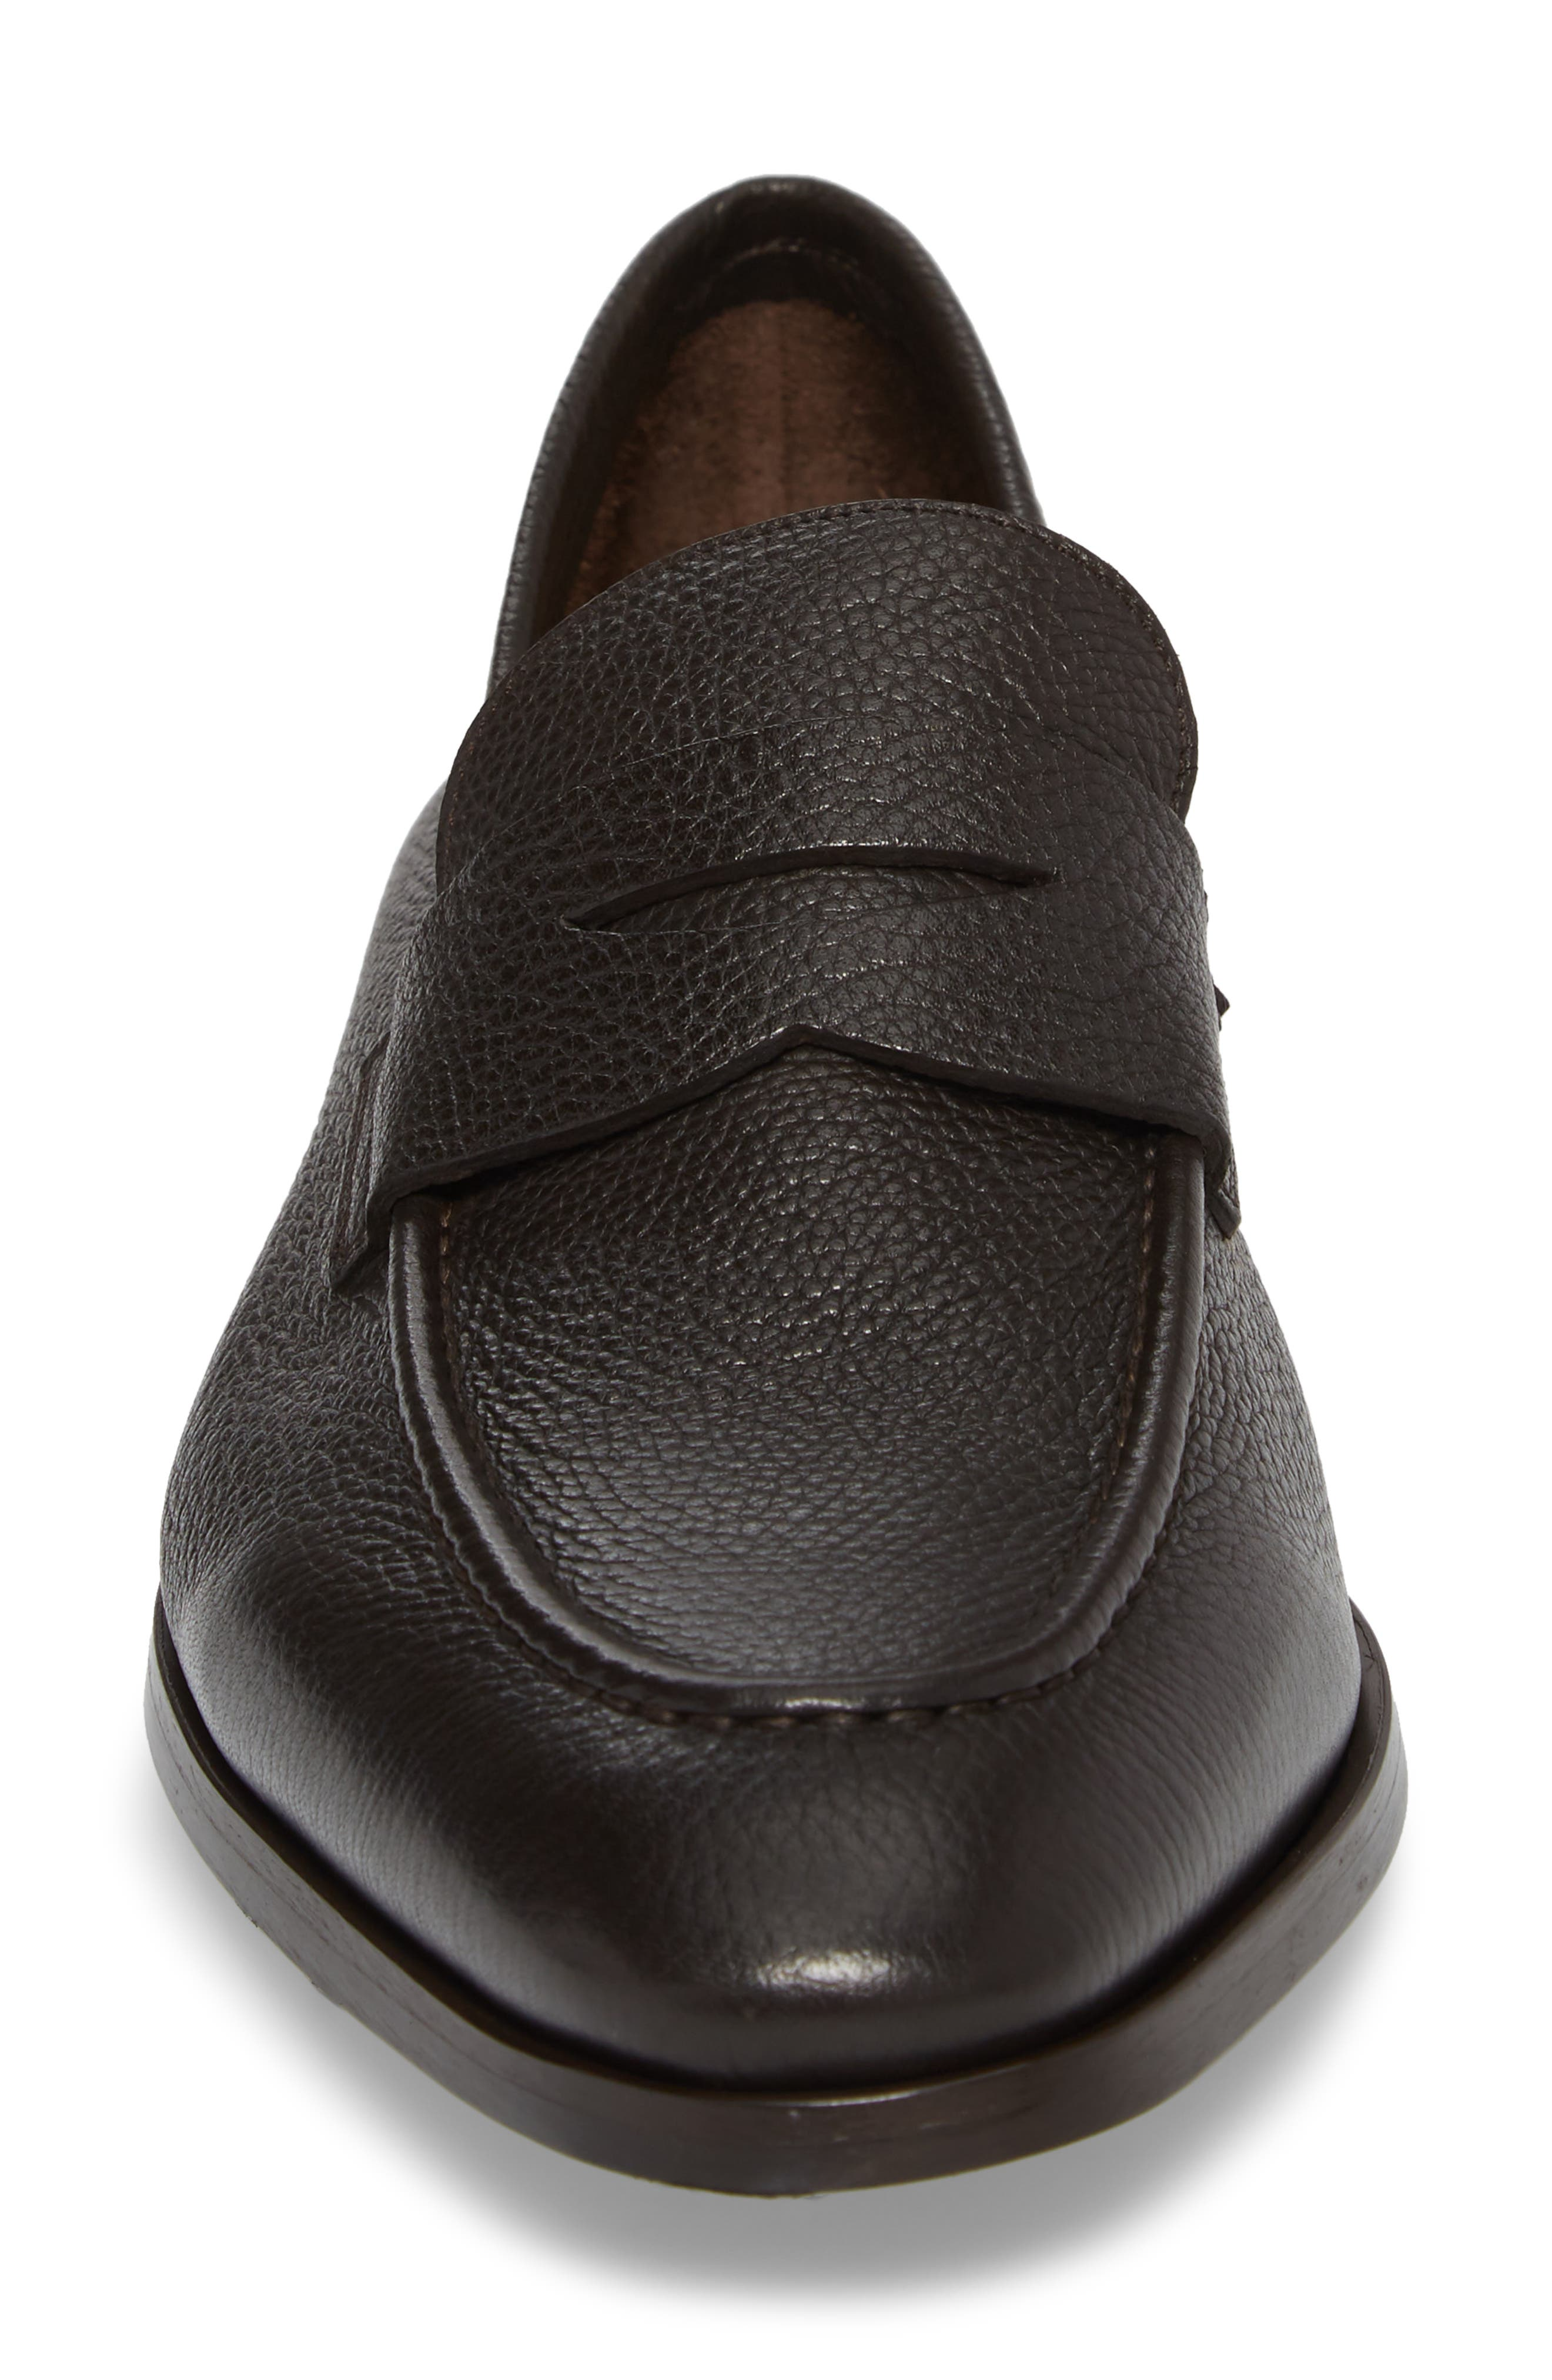 Johnson Penny Loafer,                             Alternate thumbnail 4, color,                             Tmoro Leather